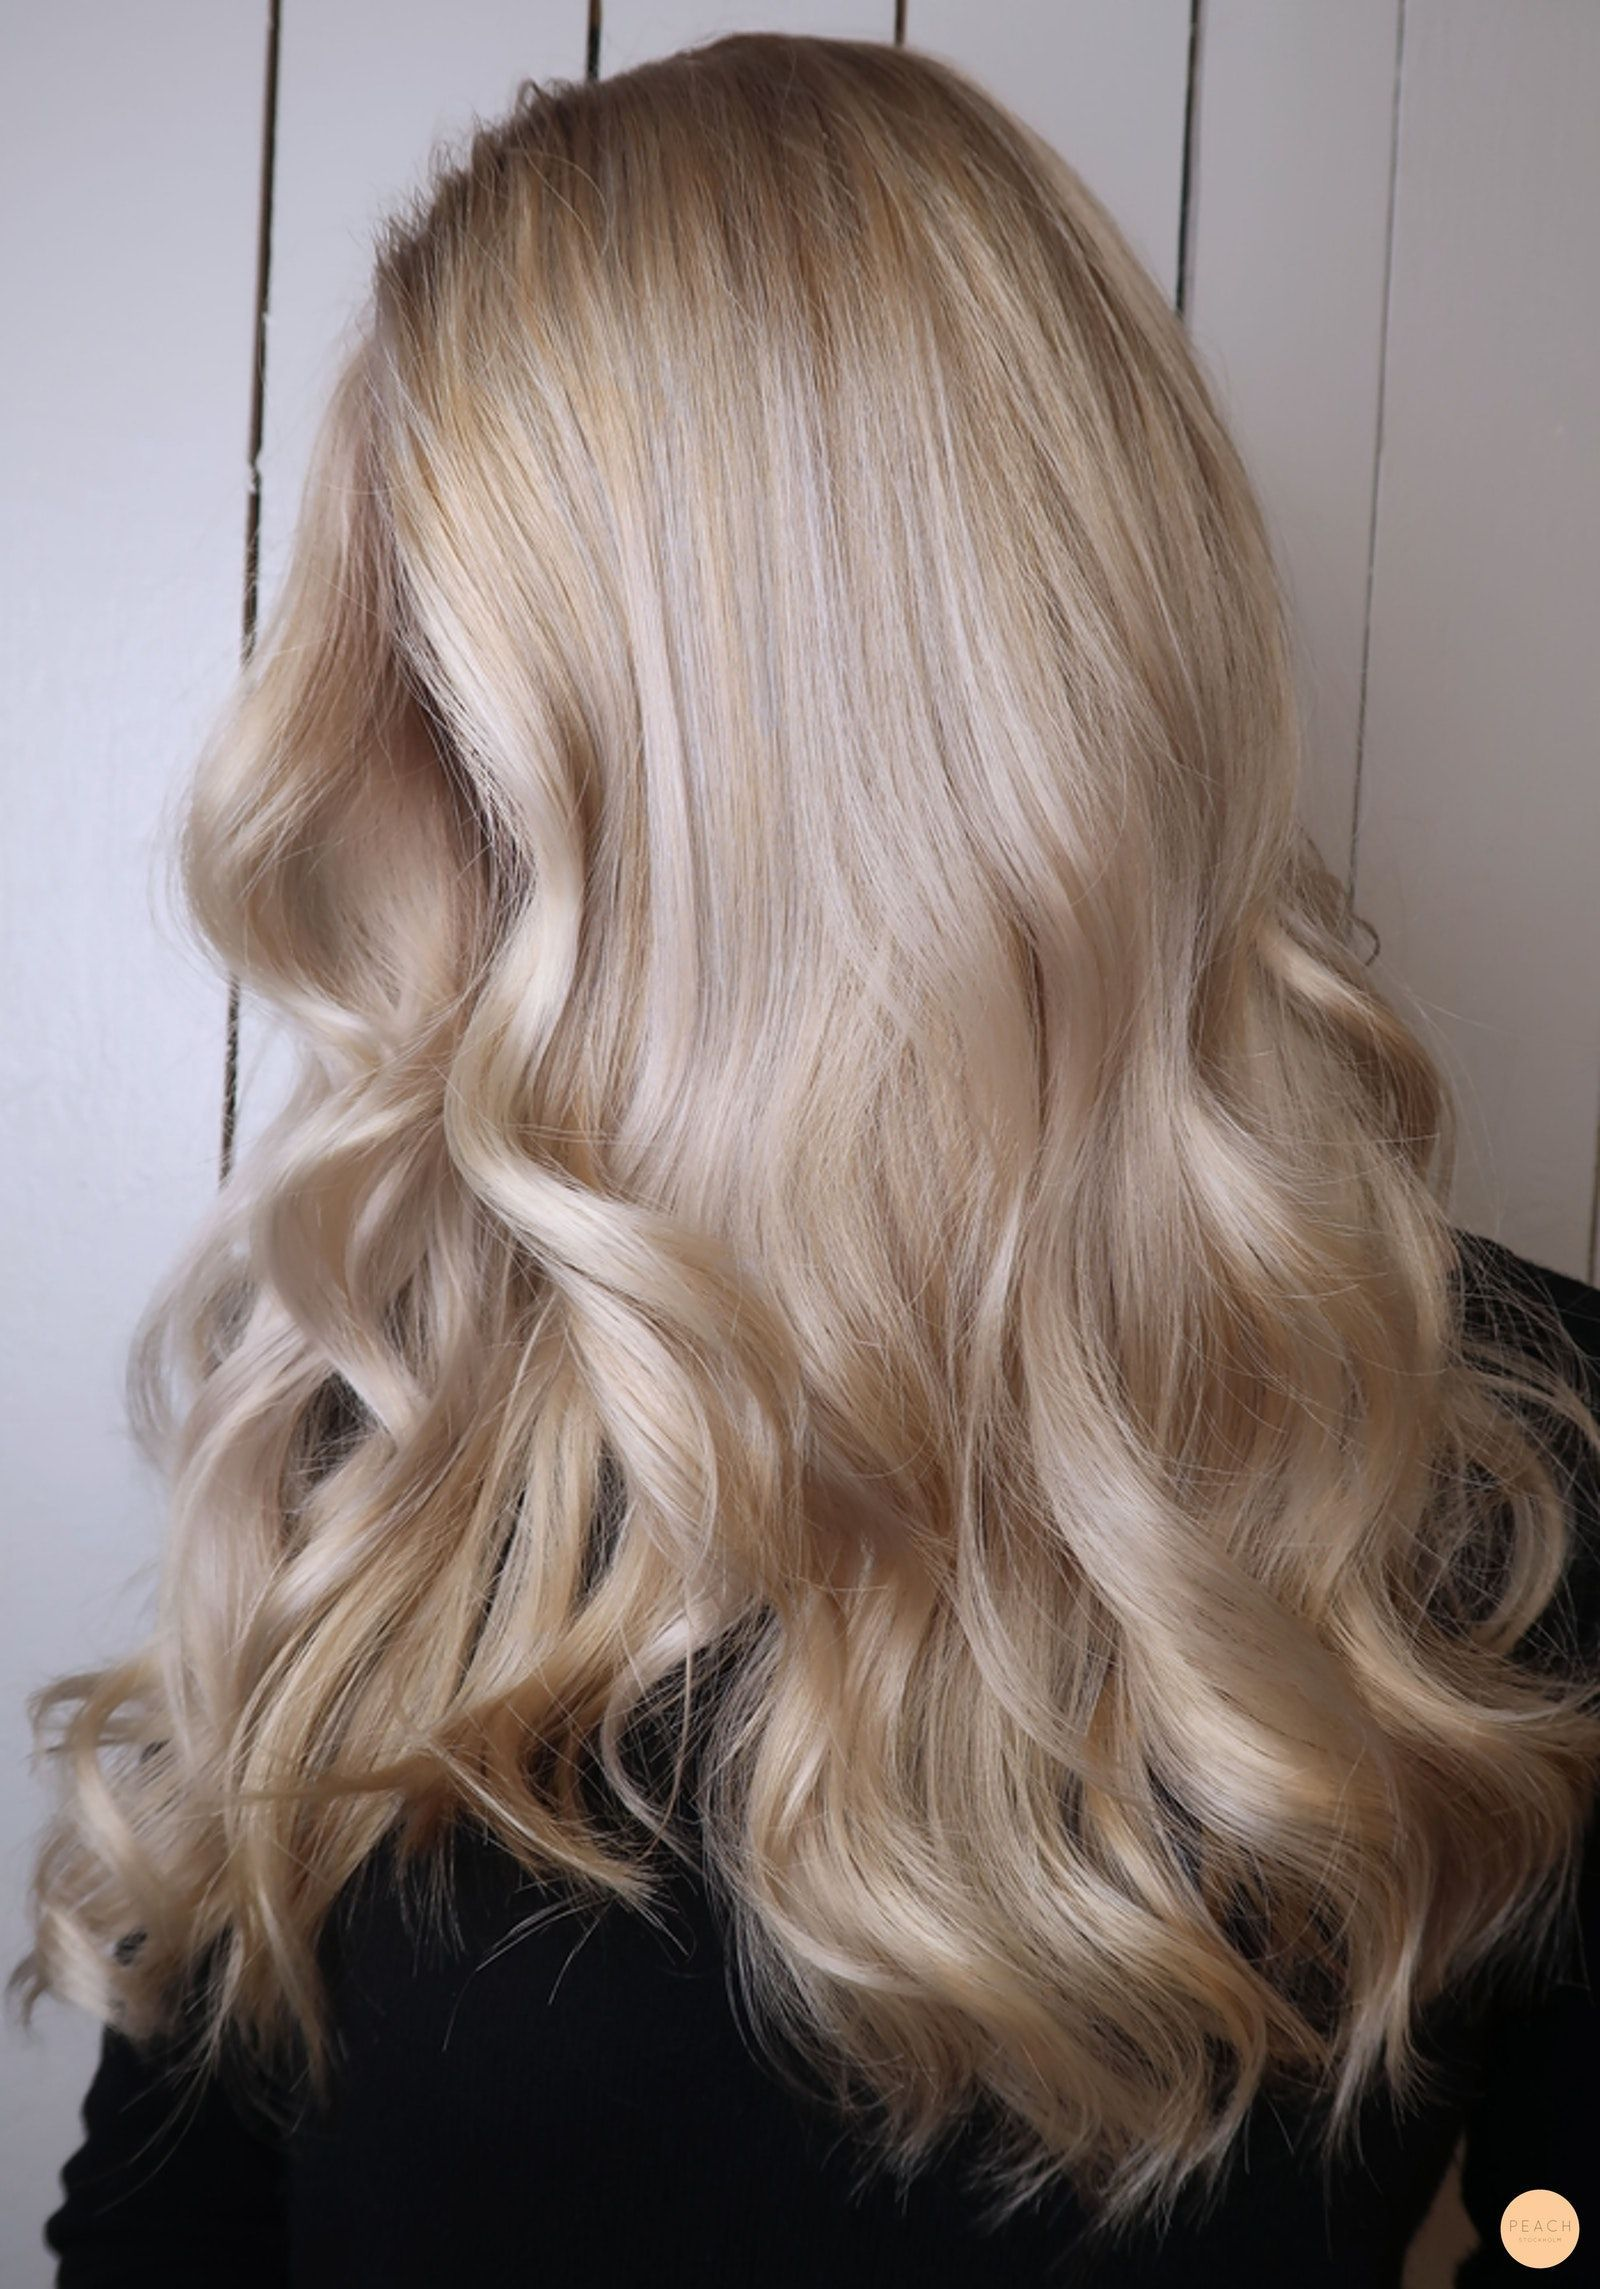 Loop Hair To Remove Outgrowth And Home Color For A Cool Blonde